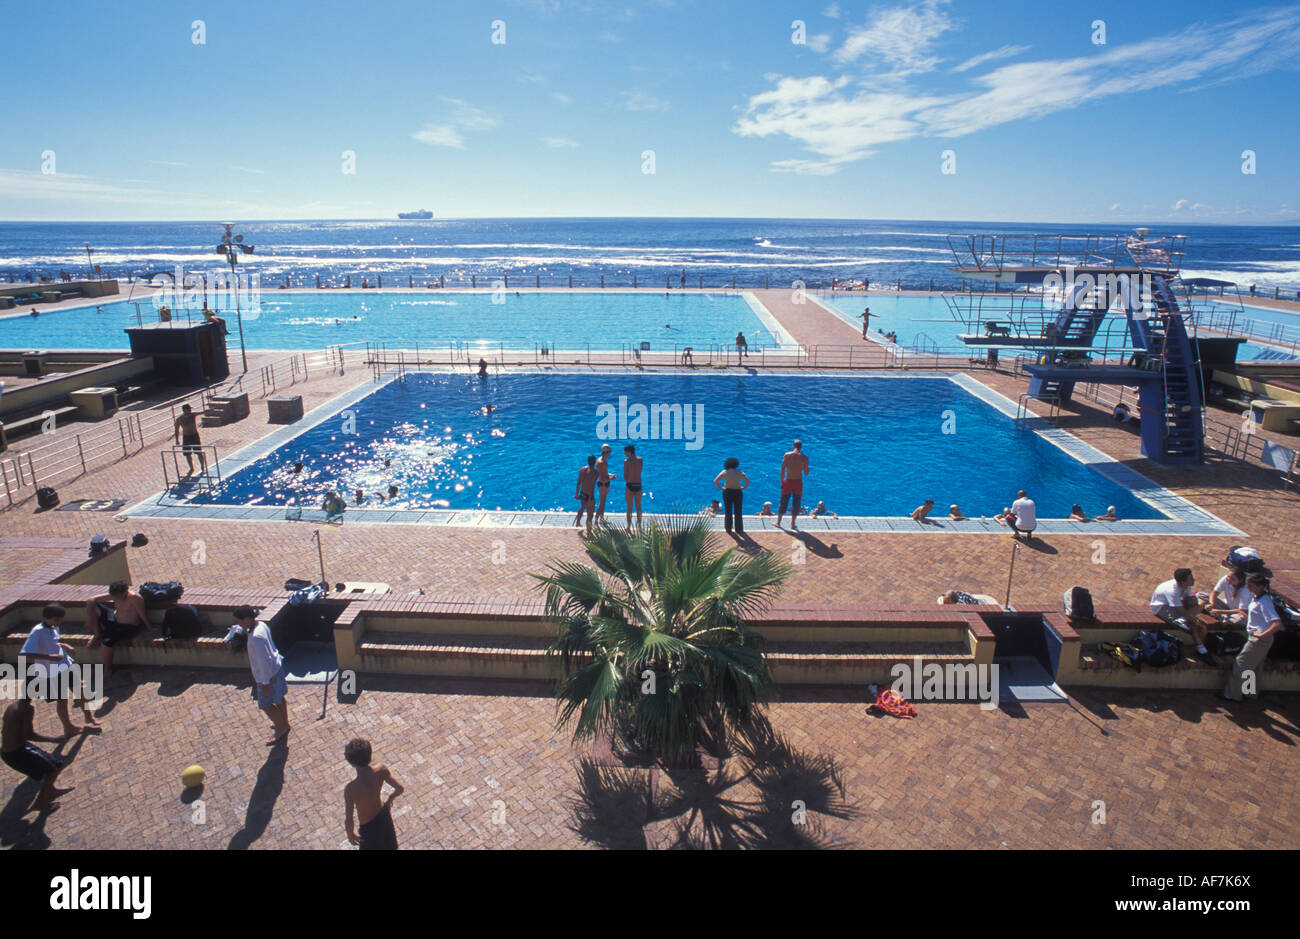 Outdoor Swimming Pool Of Sea Point In Cape Town South Africa Stock Photo Royalty Free Image